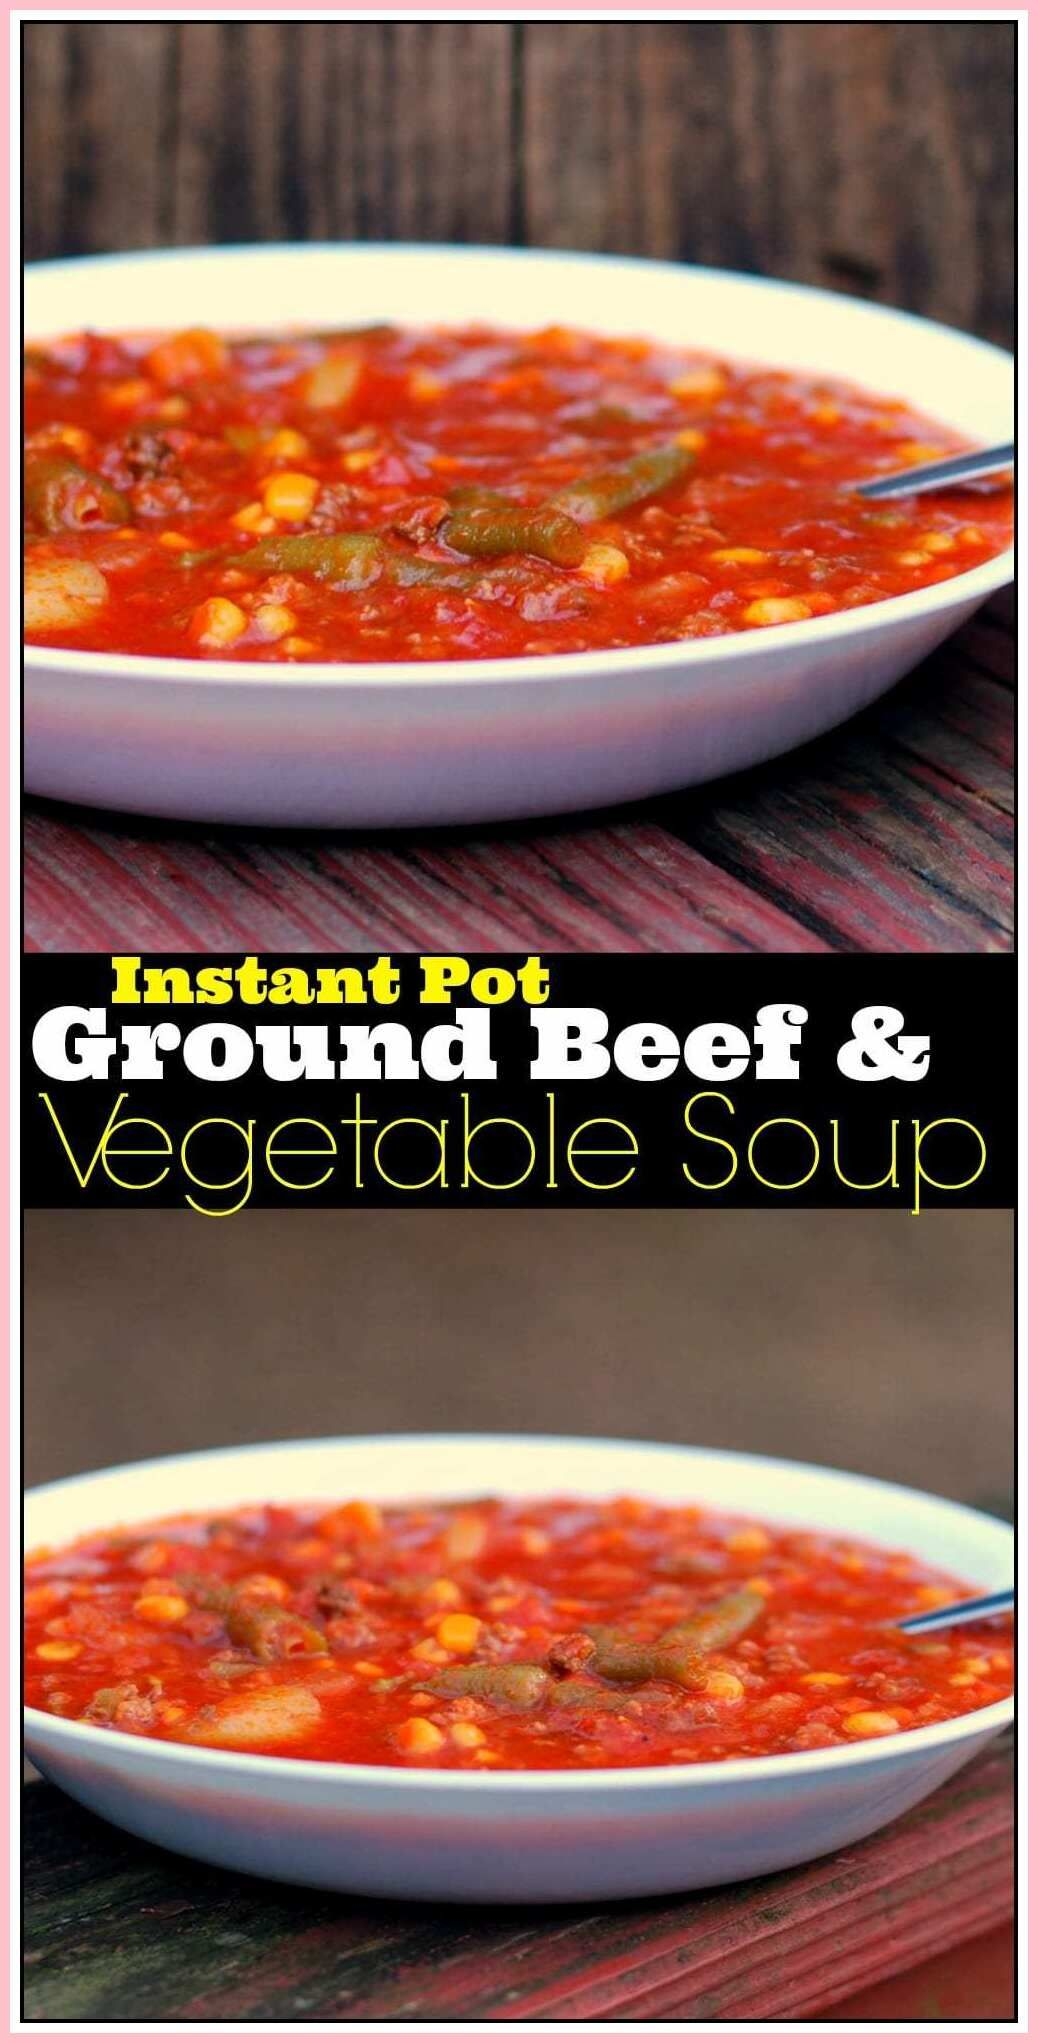 75 Reference Of Mexican Instant Pot Recipes Ground Beef In 2020 Veggie Soup Recipes Beef Soup Recipes Ground Beef